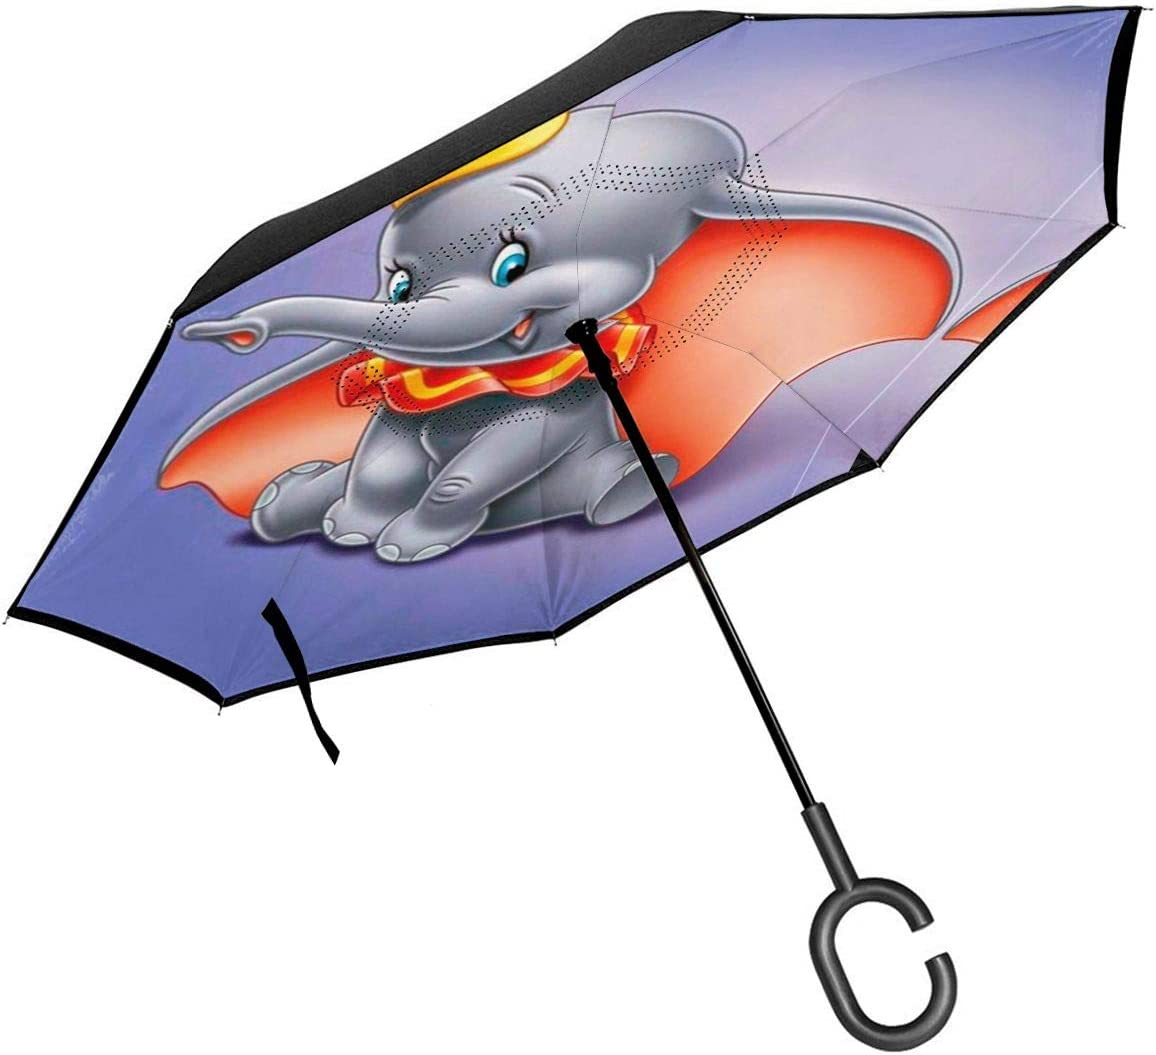 Double Layer Inverted Umbrella With C-Shaped Handle Cute DUMBO Reverse Windproof Umbrella UV Protection Upside Down Umbrella